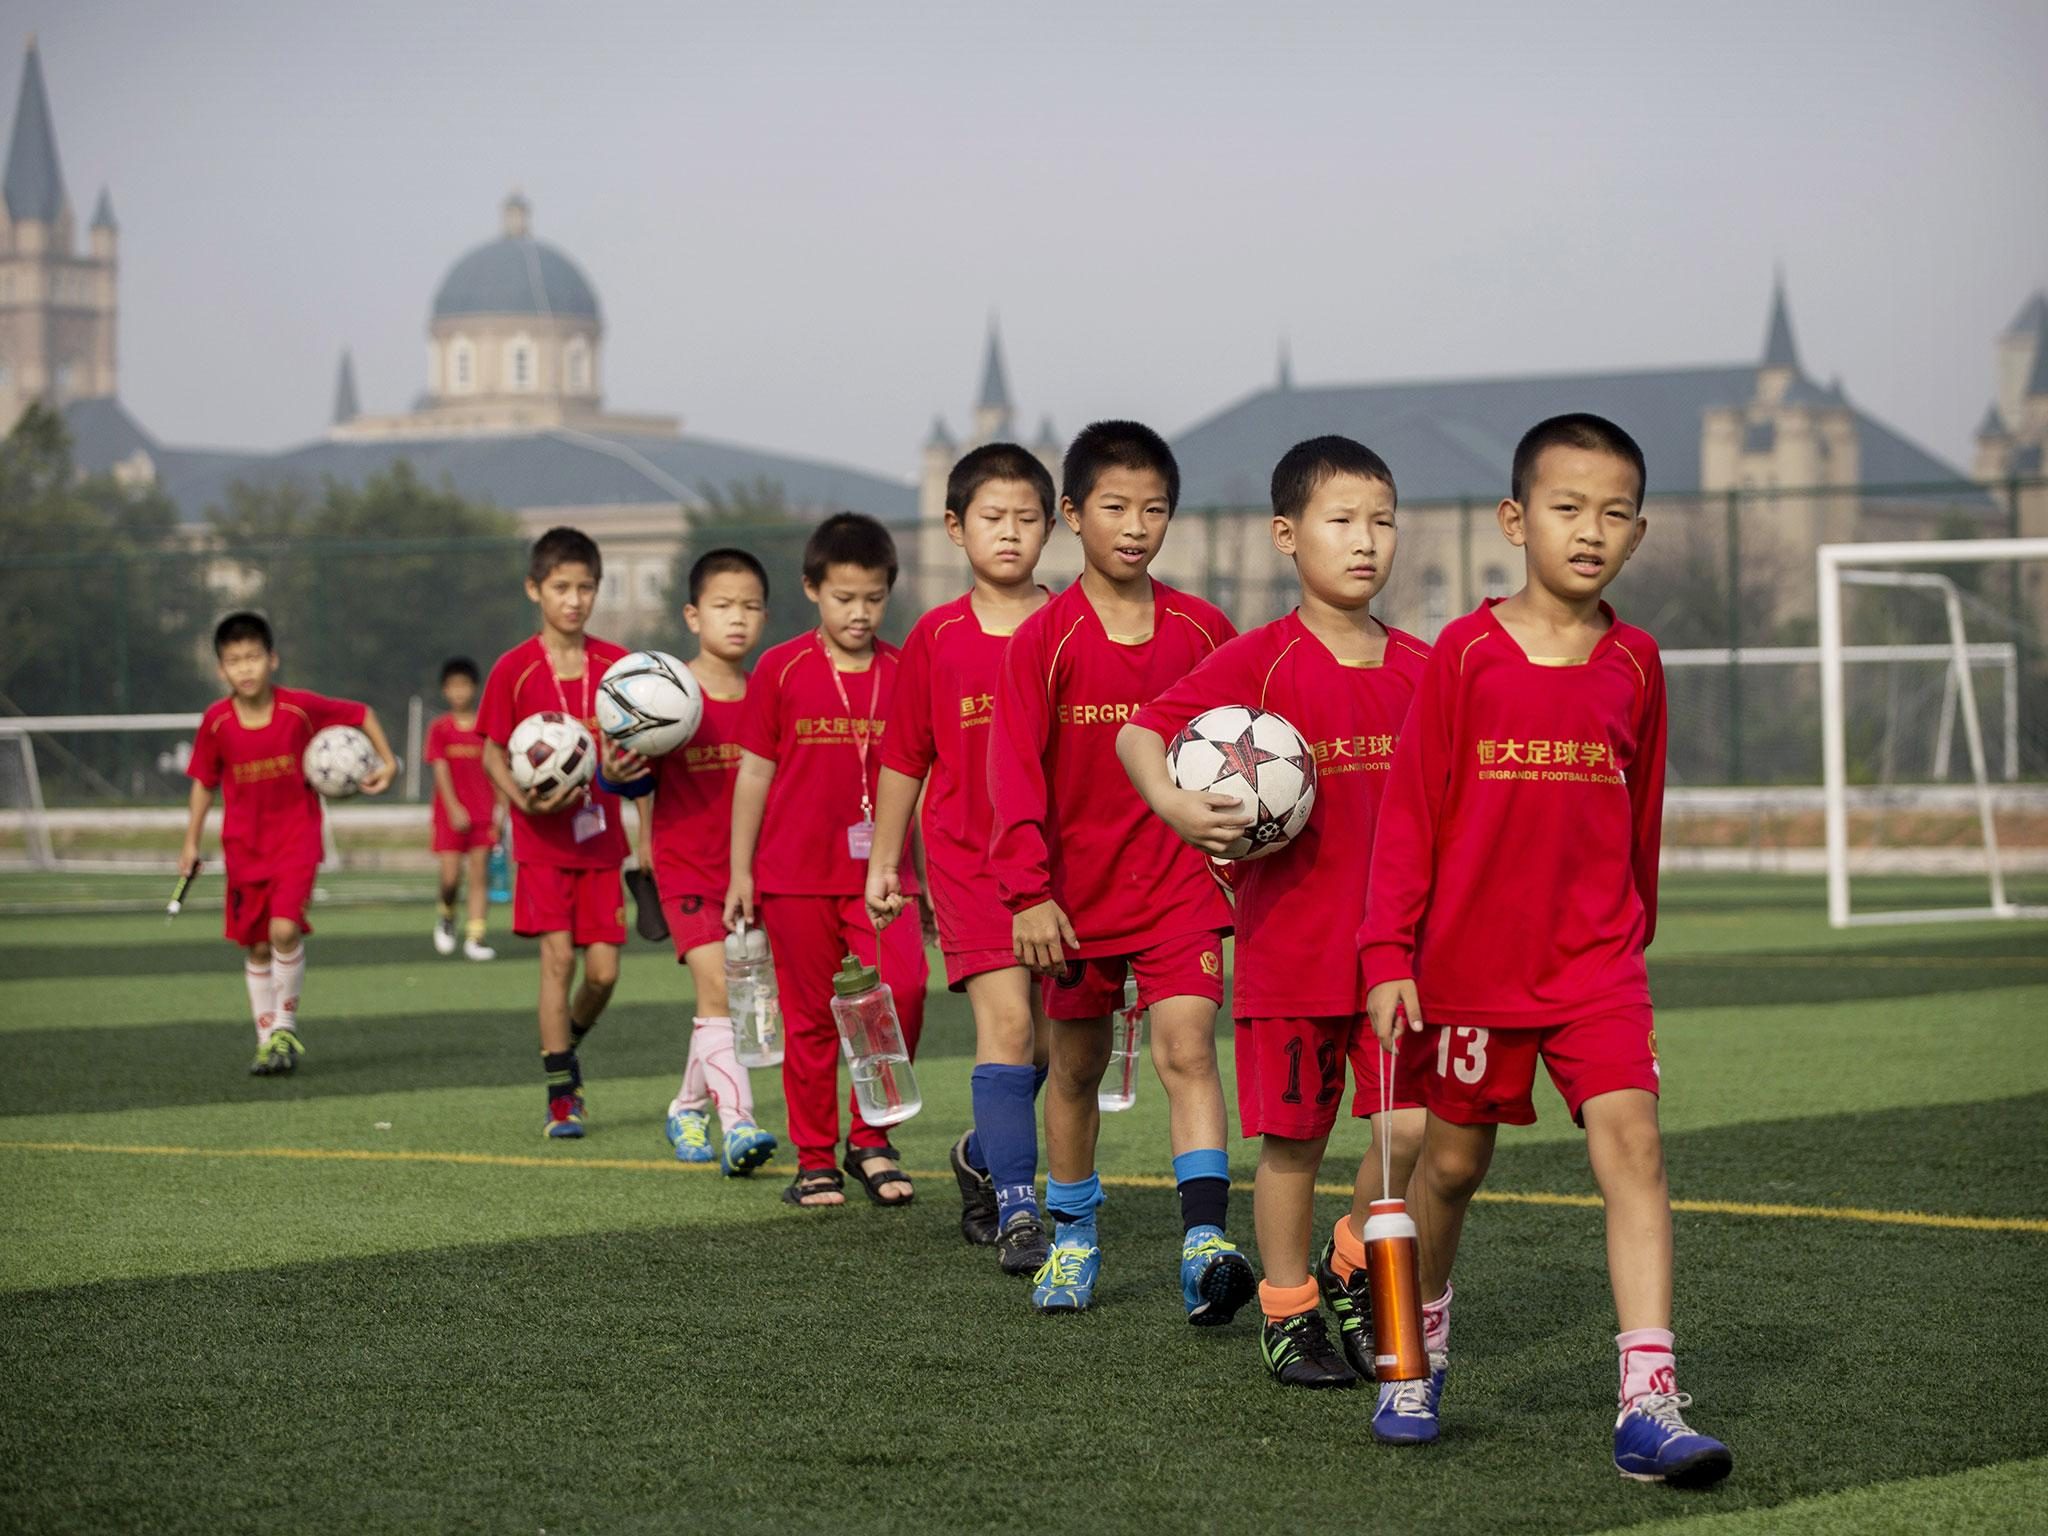 Guangzhou, the City of Football in China - DSport